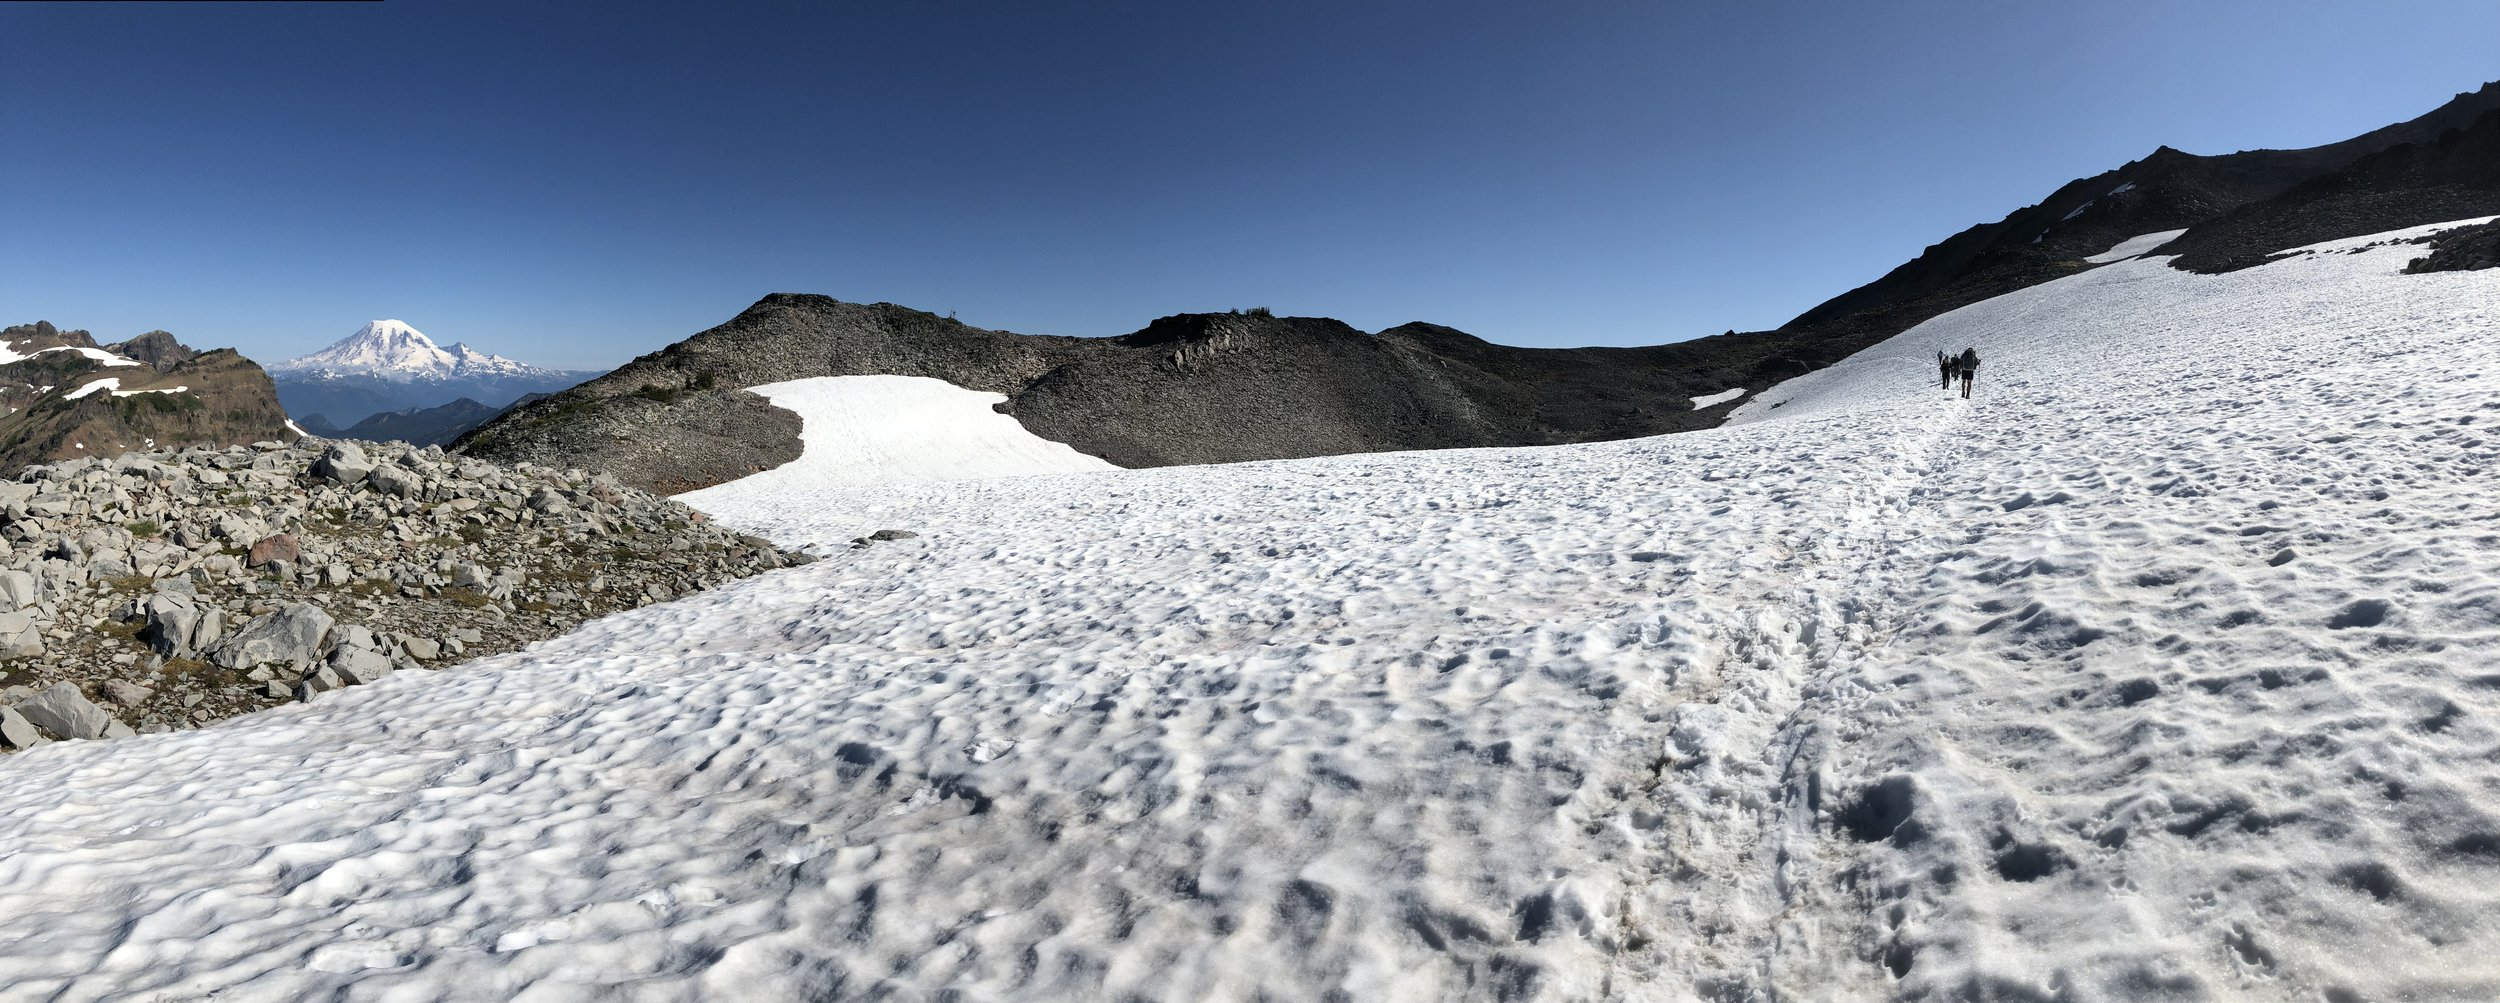 Crossing a snowfield with Mount Rainier in the distance.